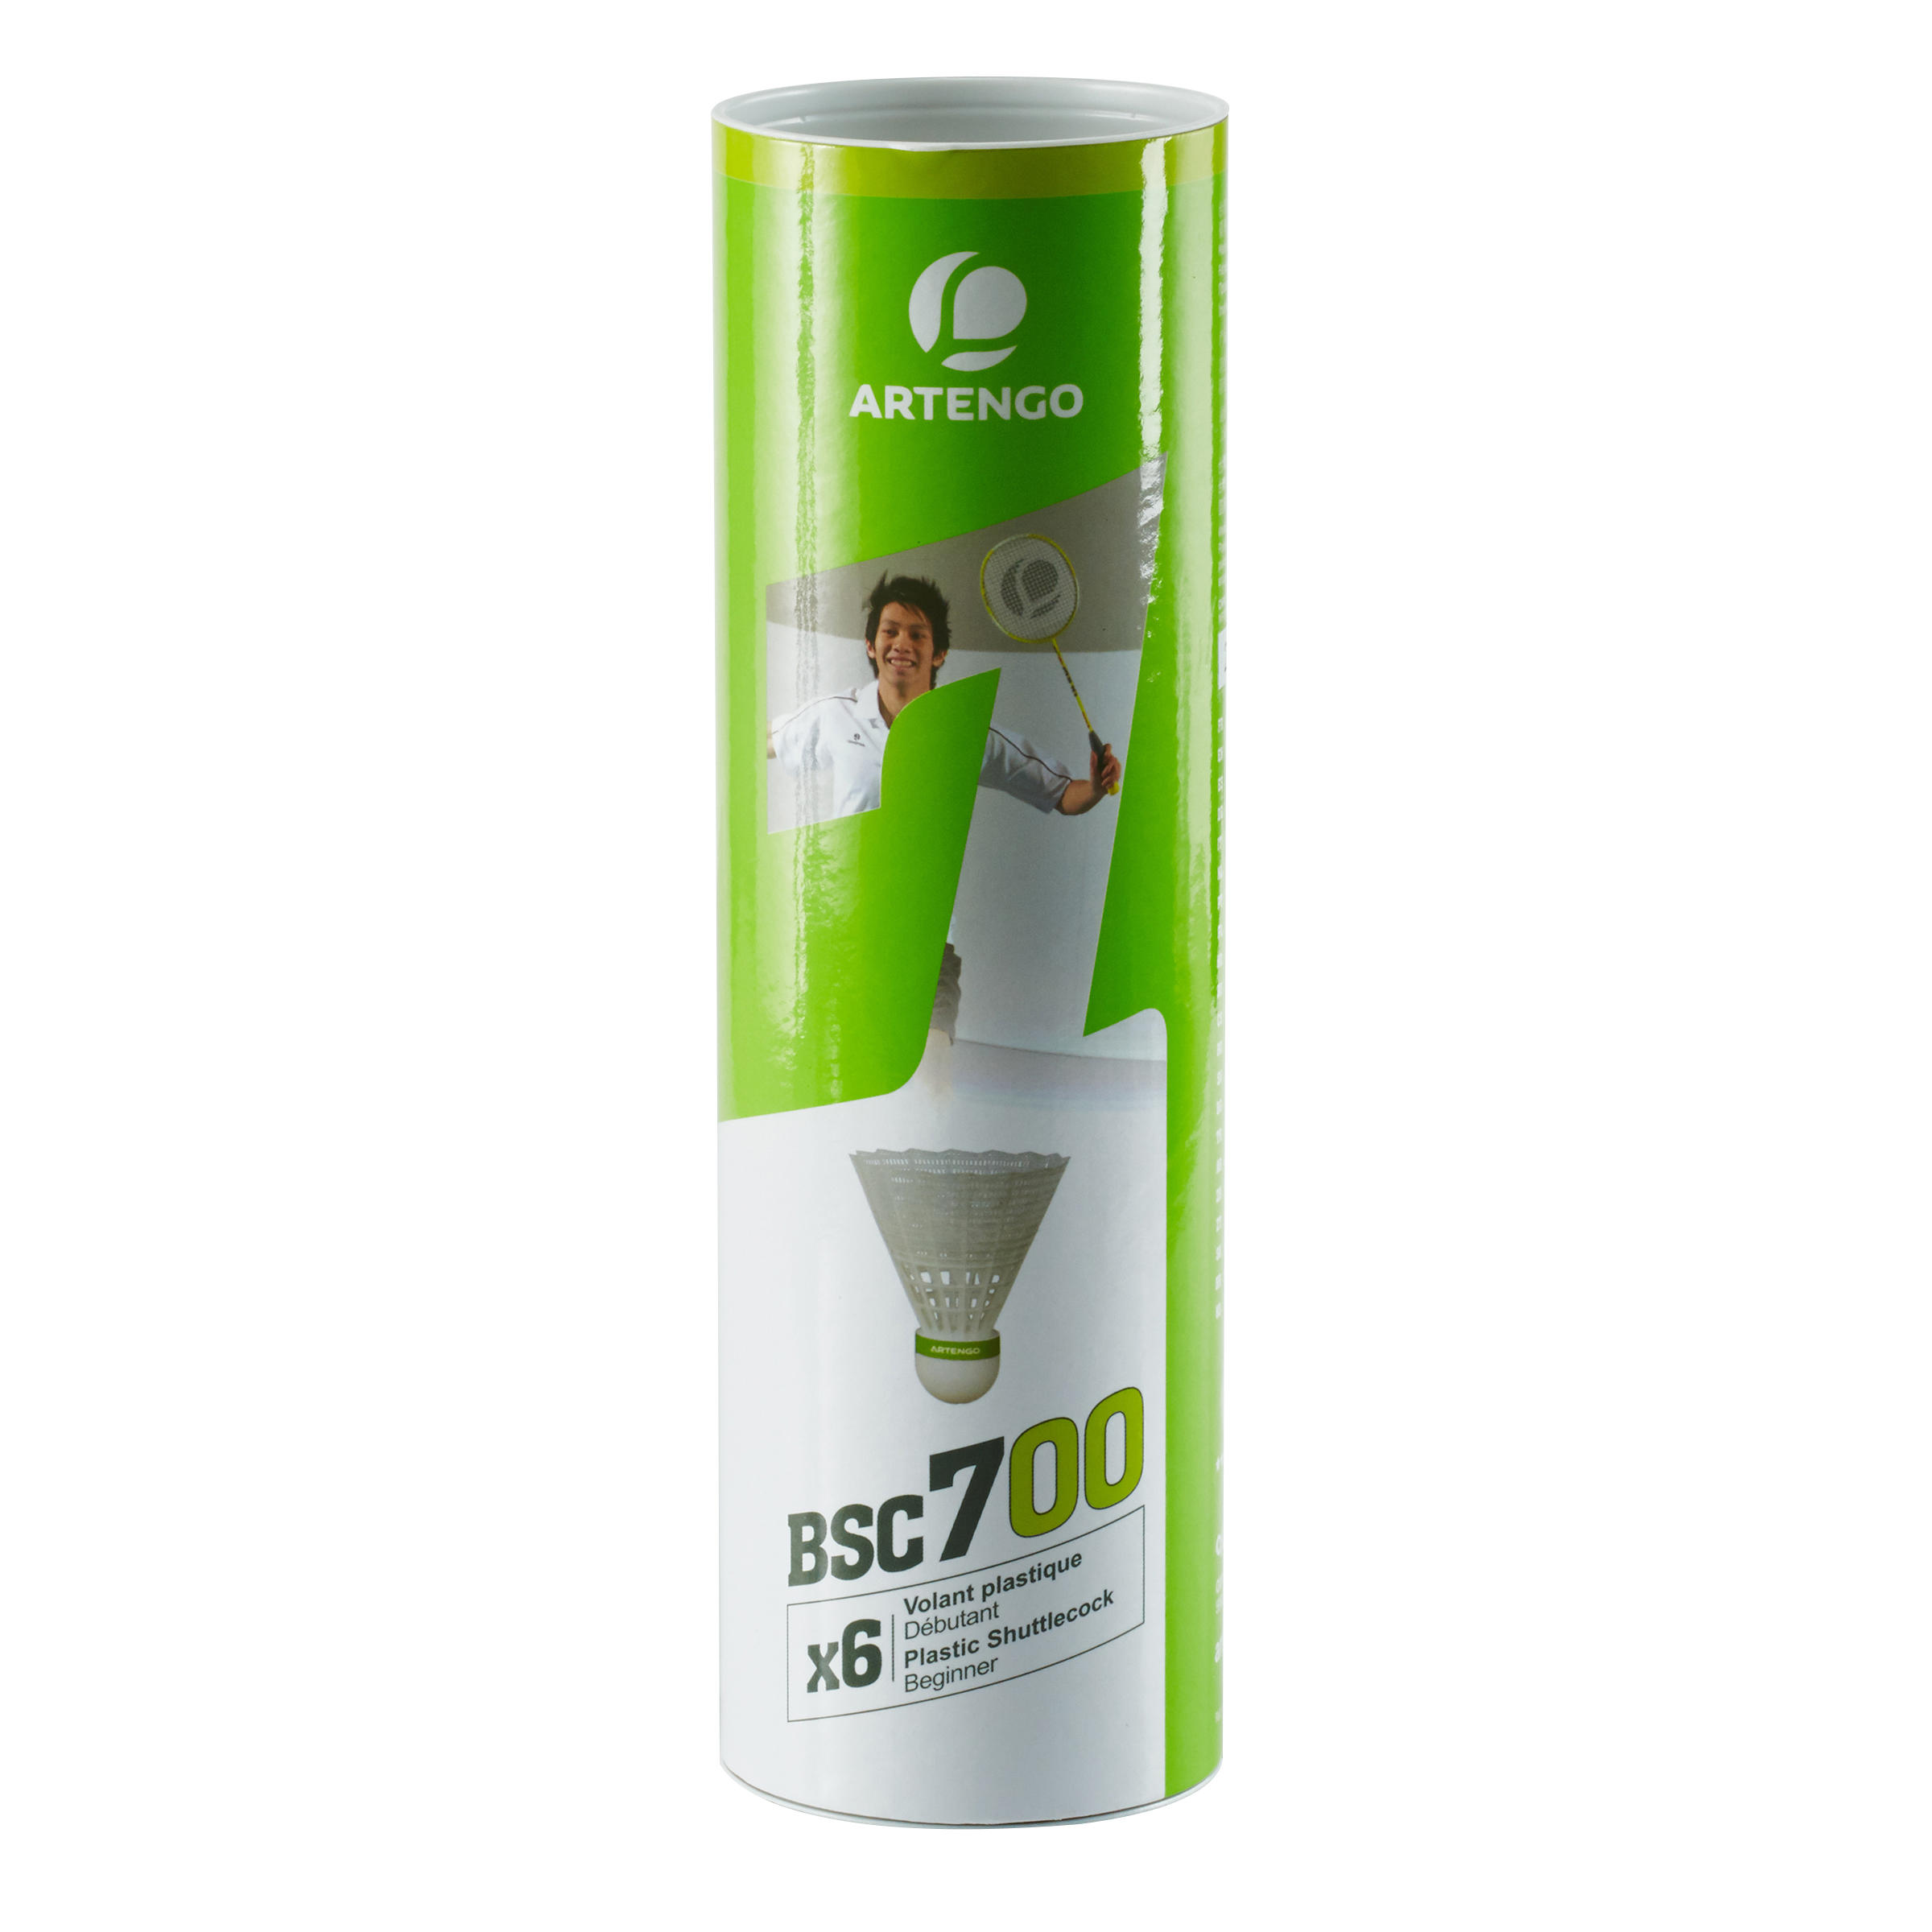 BSC700 Badminton Shuttle 6-Pack - White